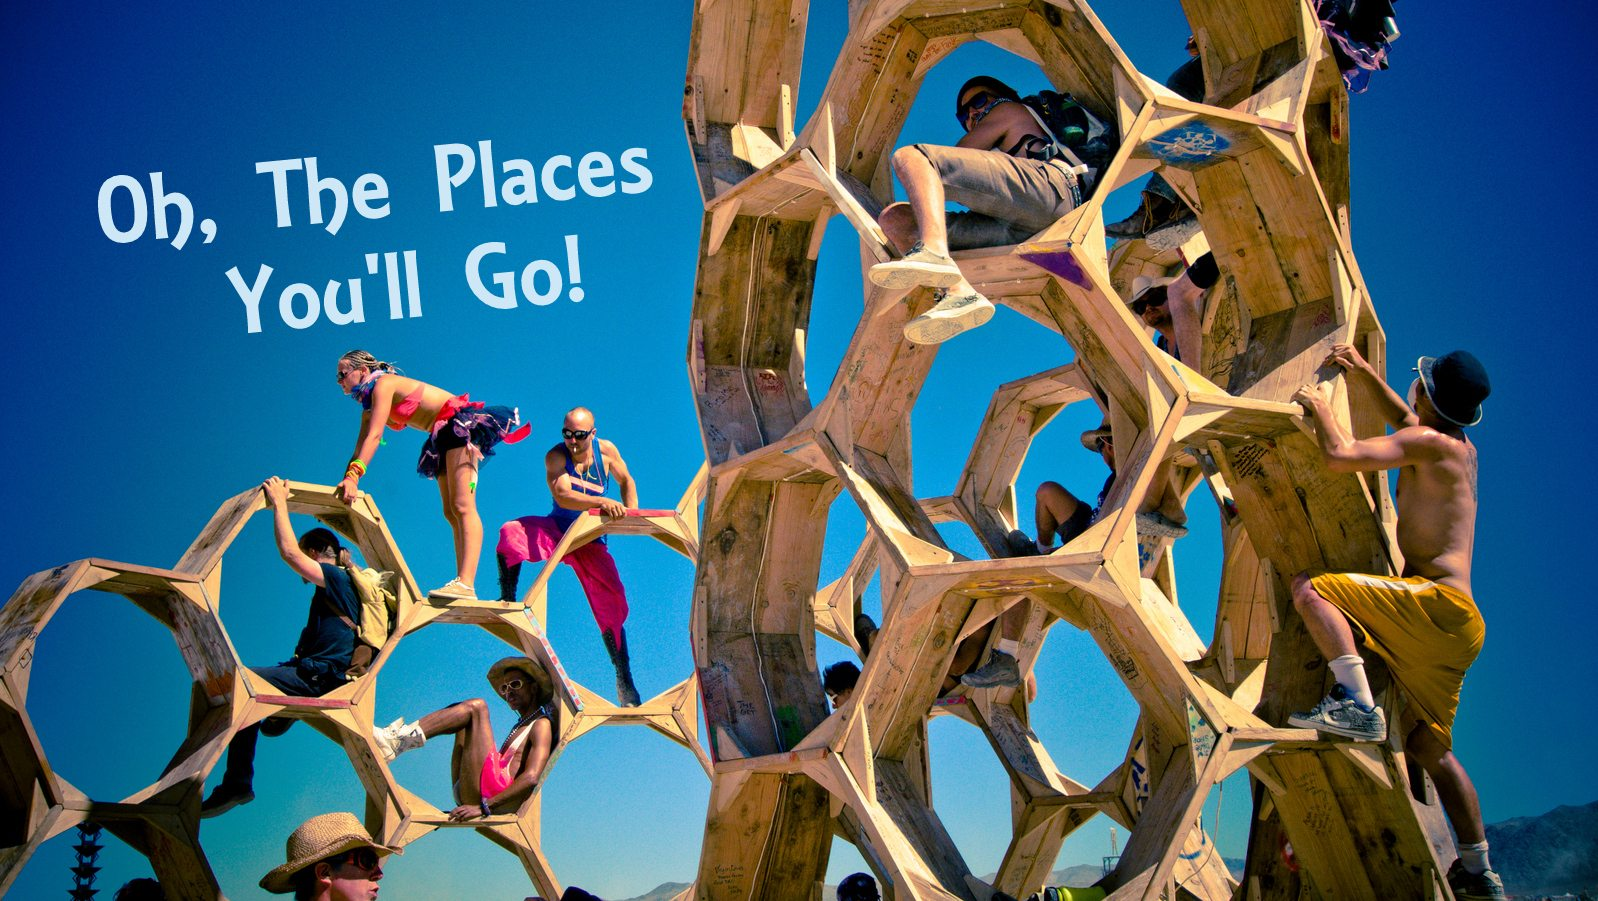 Image: Oh, The Places You'll Go burning man sculpture looking like a 3D honey comb, with many people climbing through it.